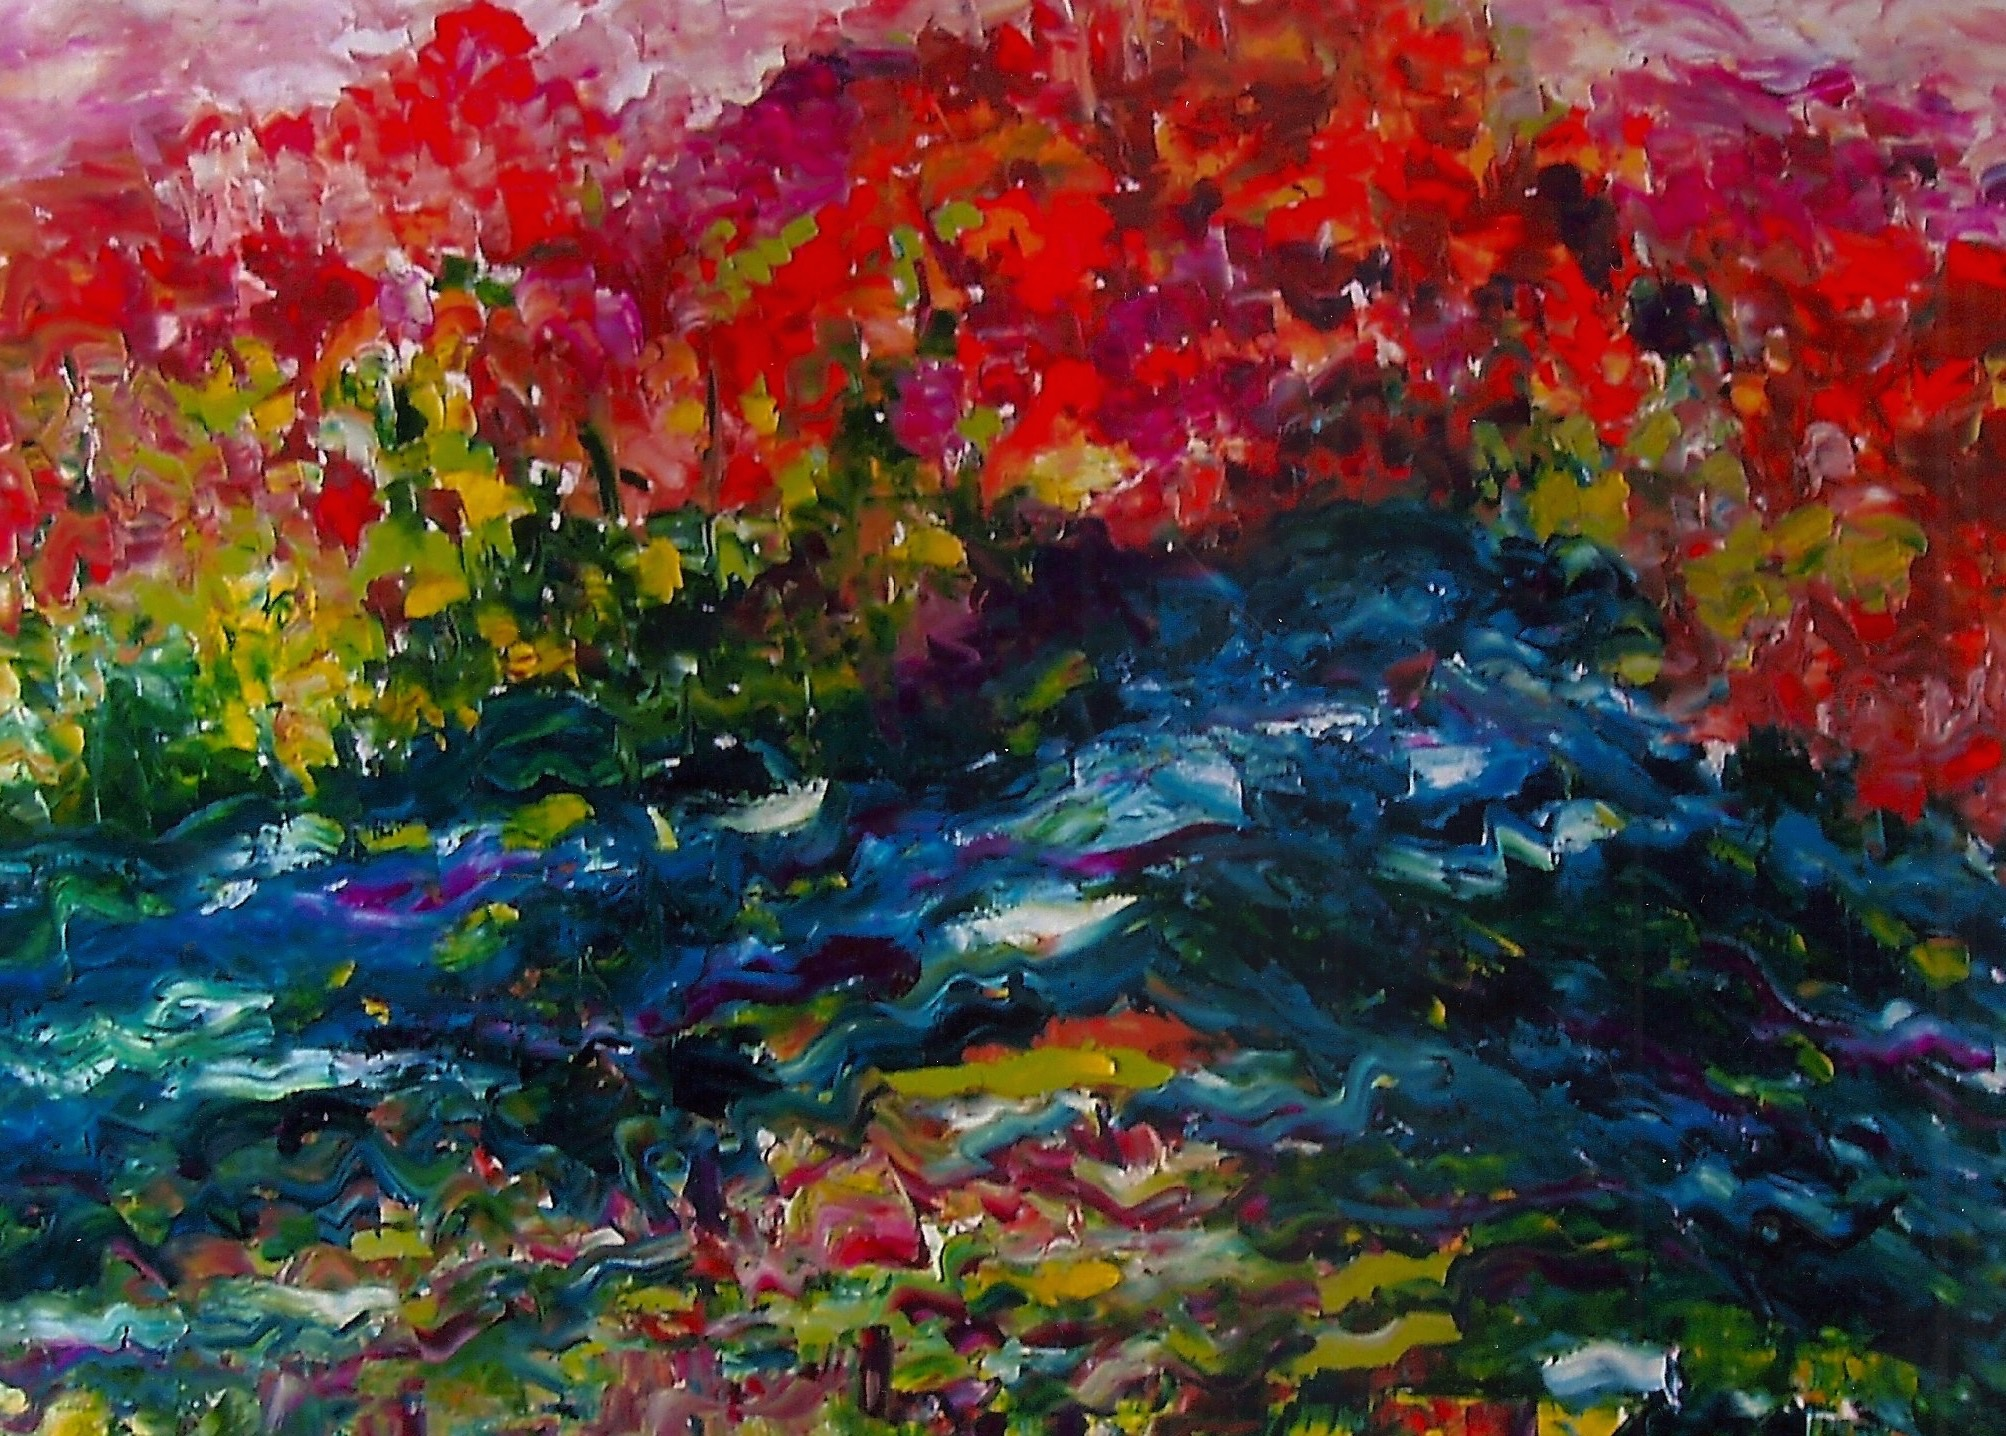 Autumn at The Point, 36x48 Oil on Canvas  Island Park, Momence IL (sold)